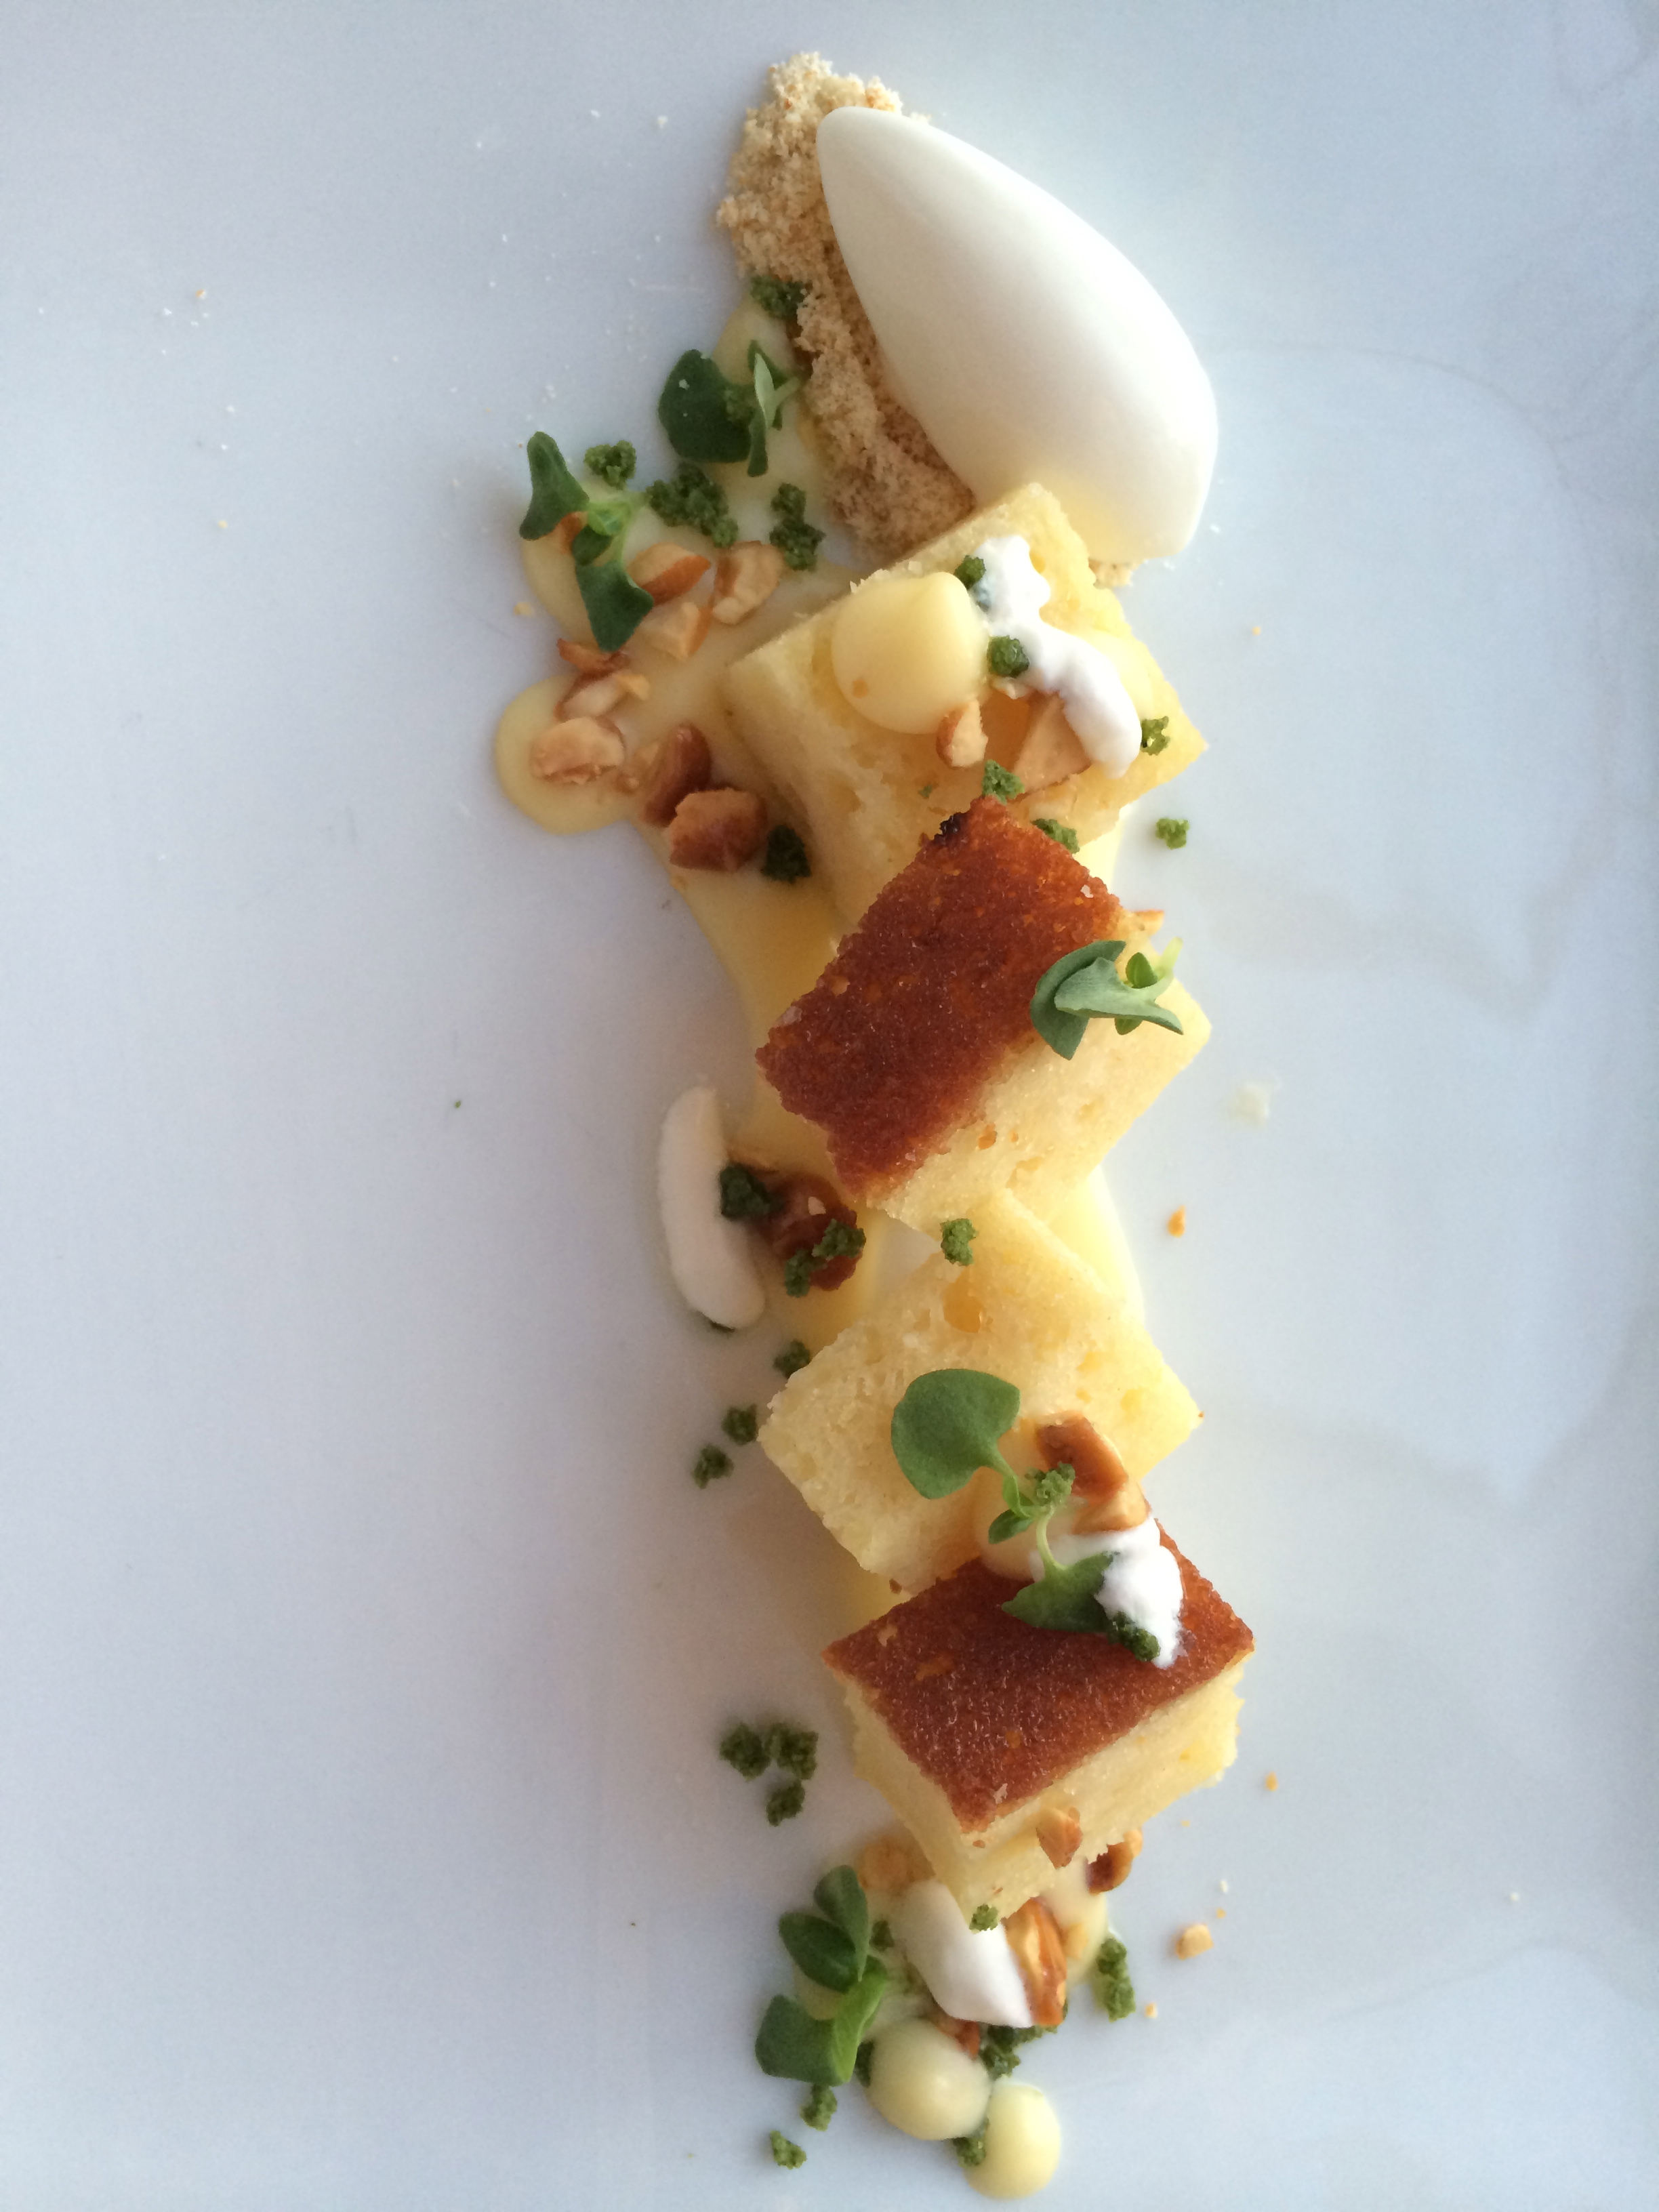 It all began with this. Lemon cake, grapefruit curd, fresh fromage, greek yogurt sorbet, and micro basil.